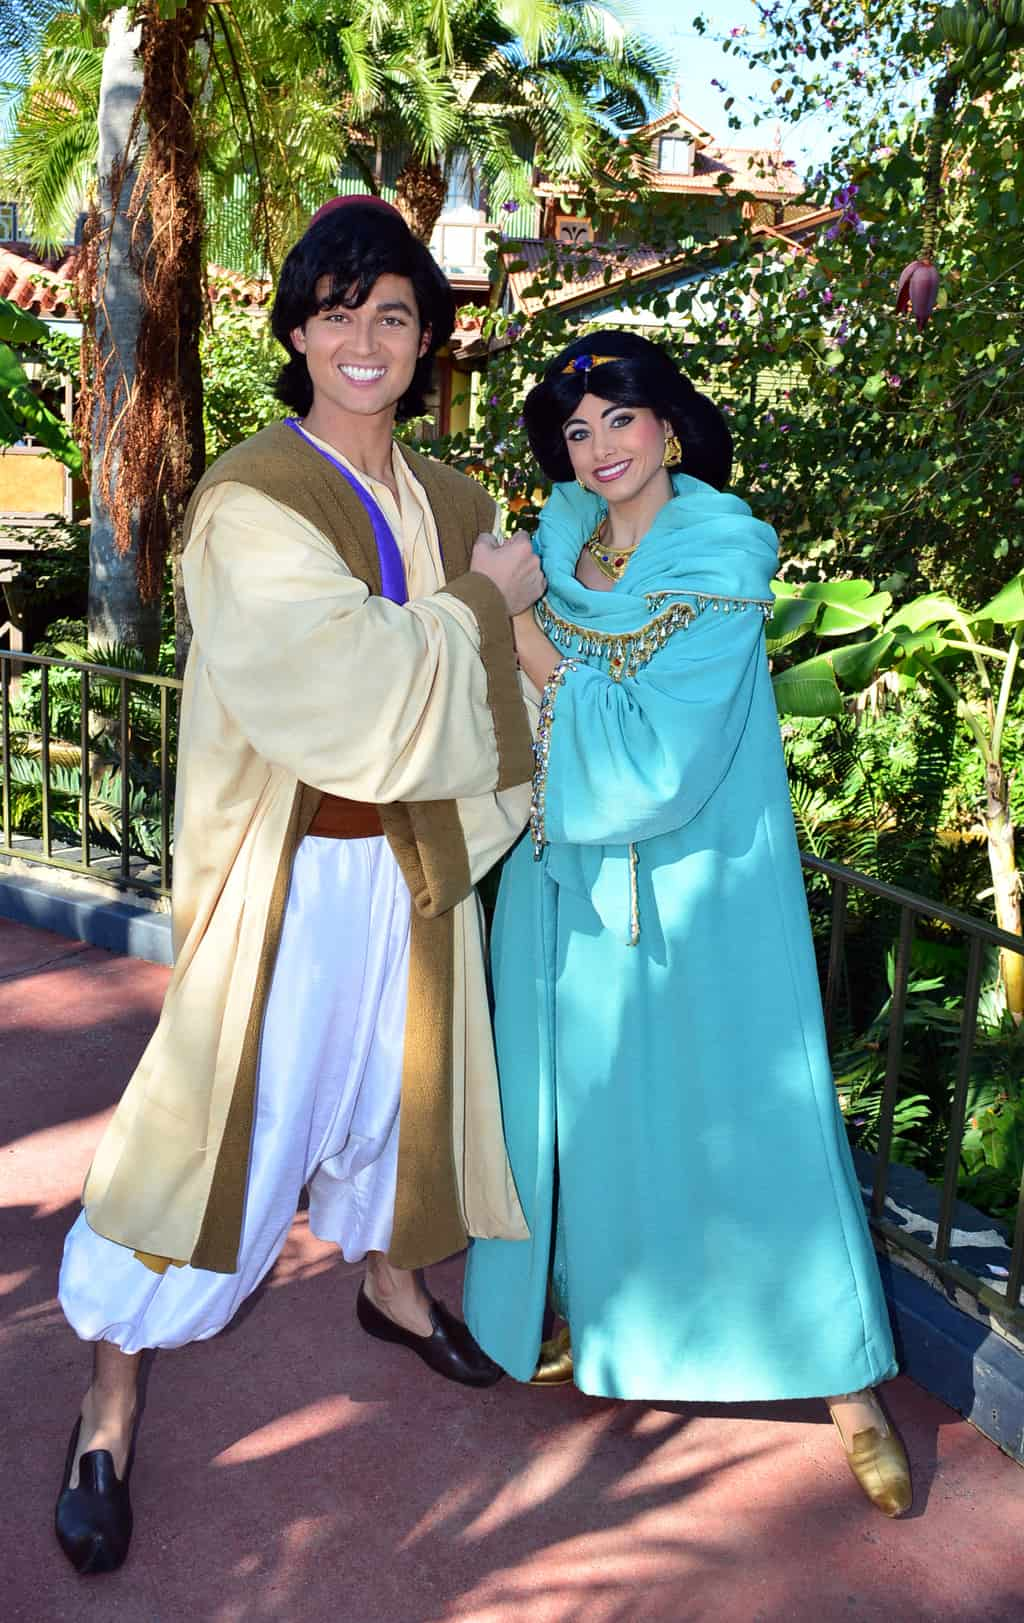 Disney Princes Appear With Their Princesses For Valentine